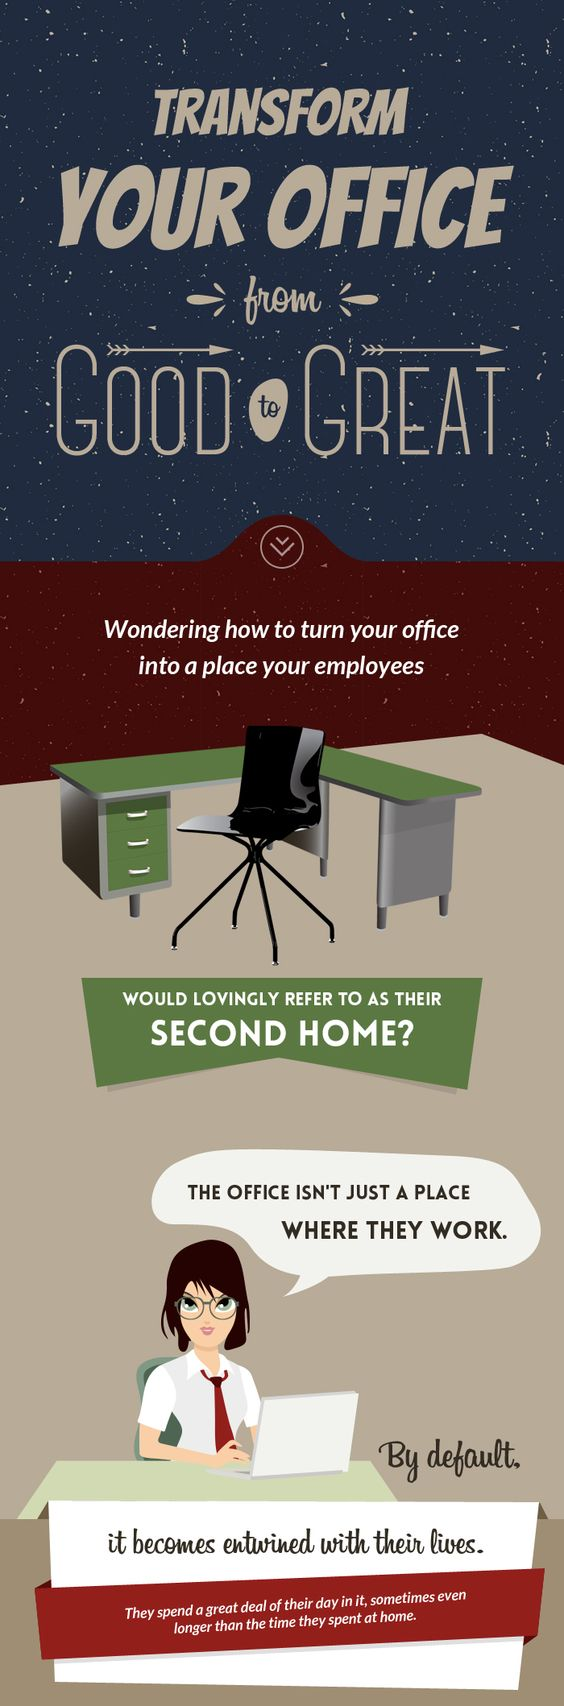 Replace your existing office furniture with modern and functional ones from Park Royal Office Furniture. All our products are made from premium quality materials. Visit our website for more details. http://www.parkroyalofficefurniture.co.uk/